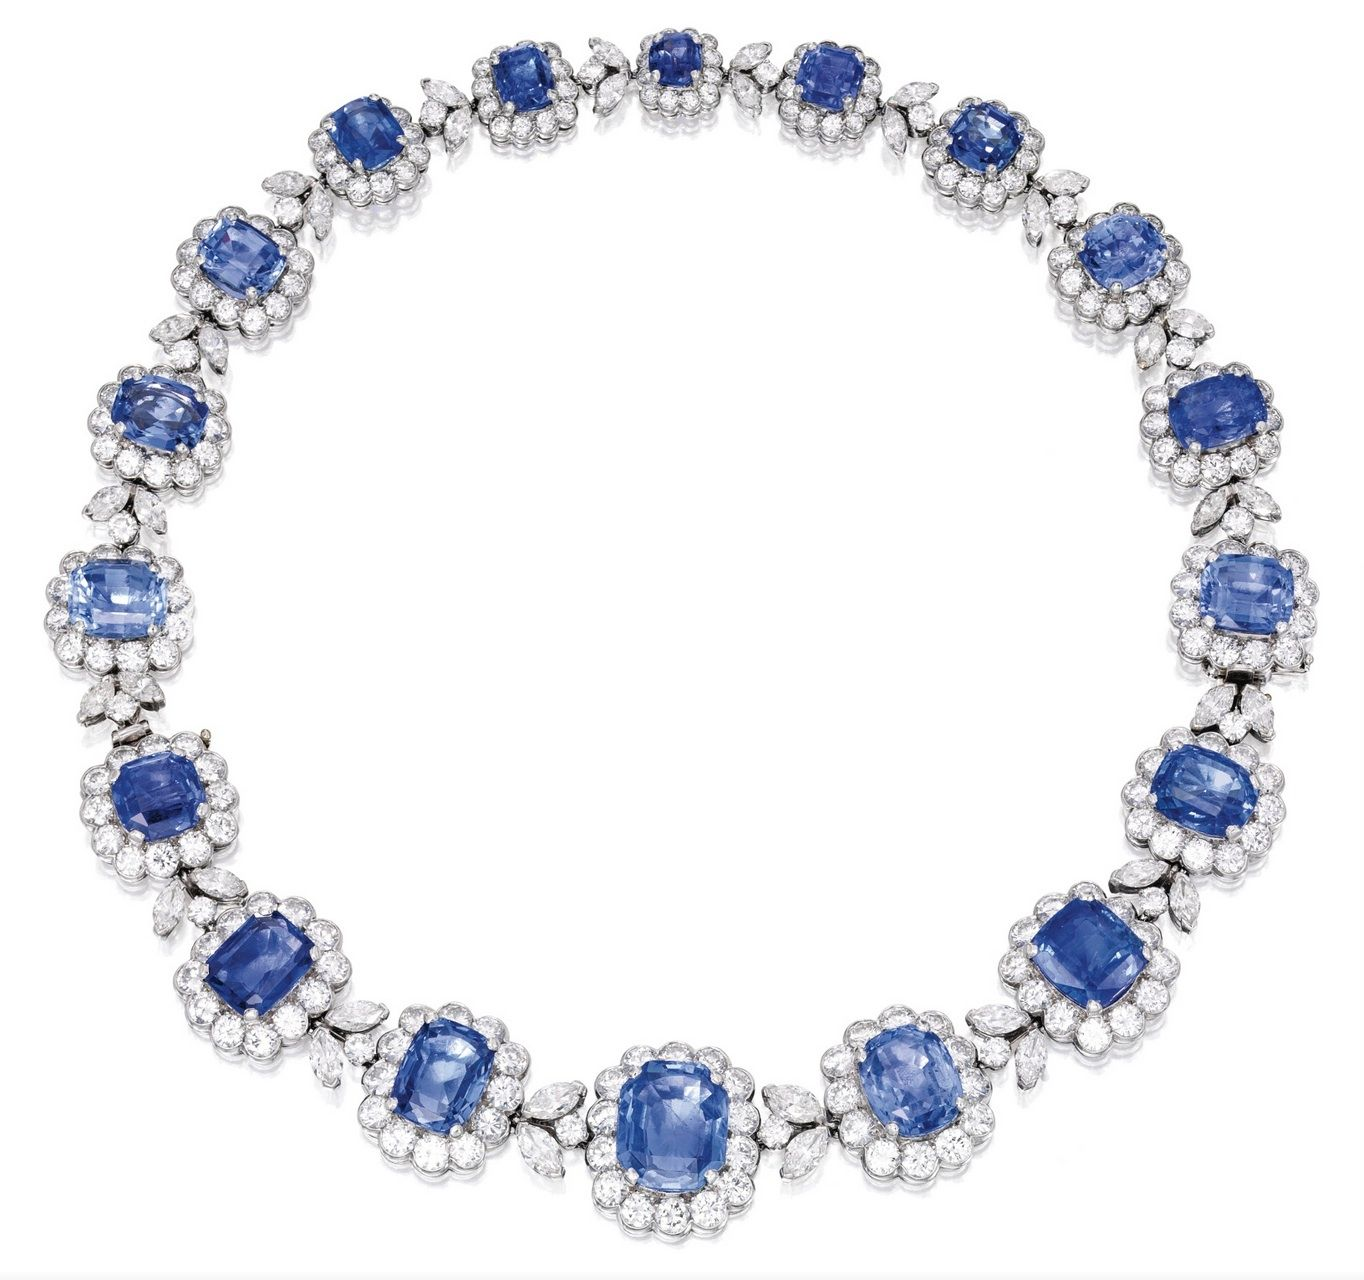 Lot 346 - PLATINUM, SAPPHIRE AND DIAMOND NECKLACE-BRACELET COMBINATION, VAN CLEEF & ARPELS